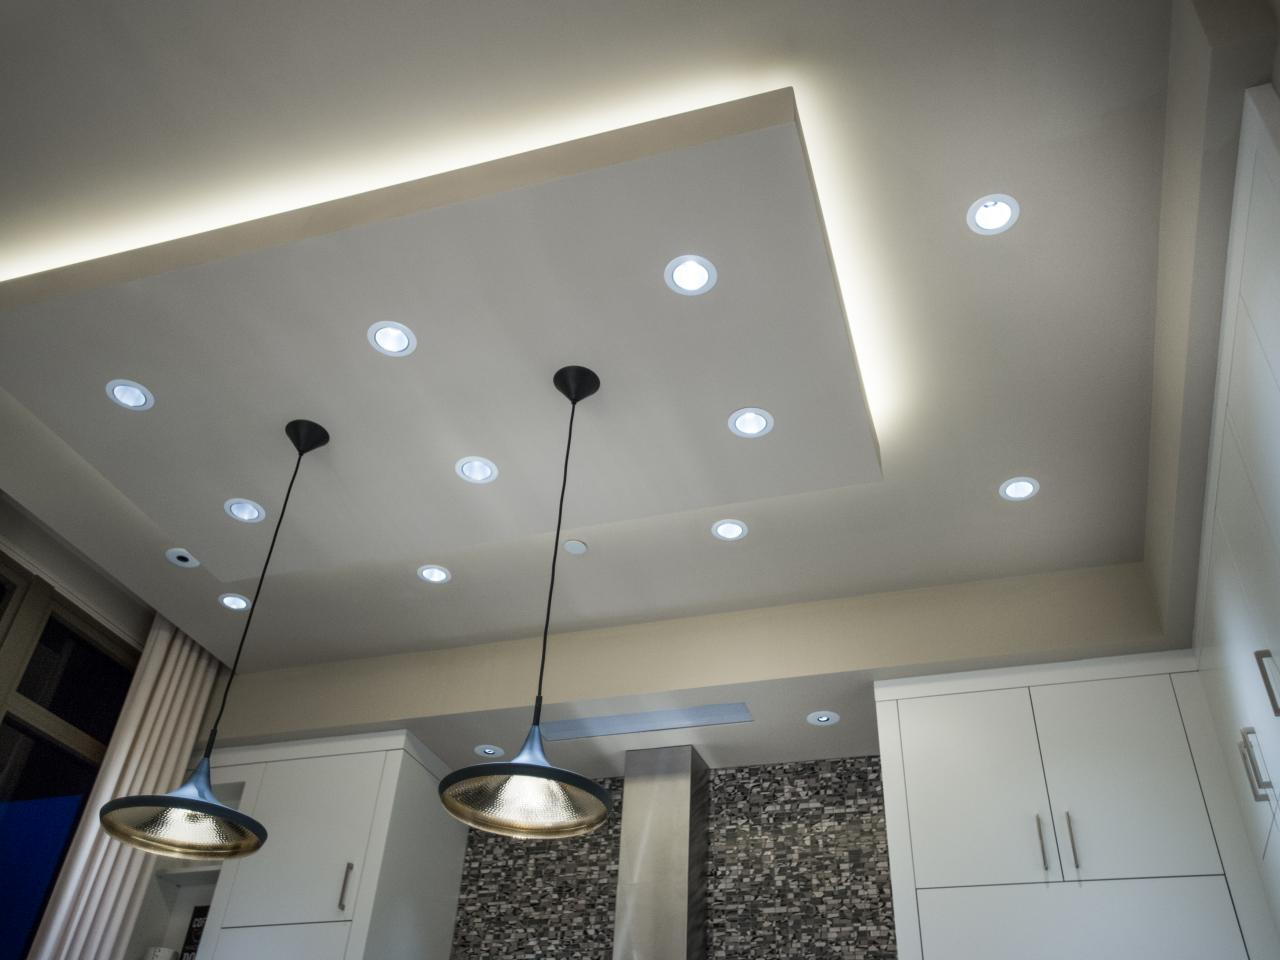 Use of led drop ceiling lights for quality lighting